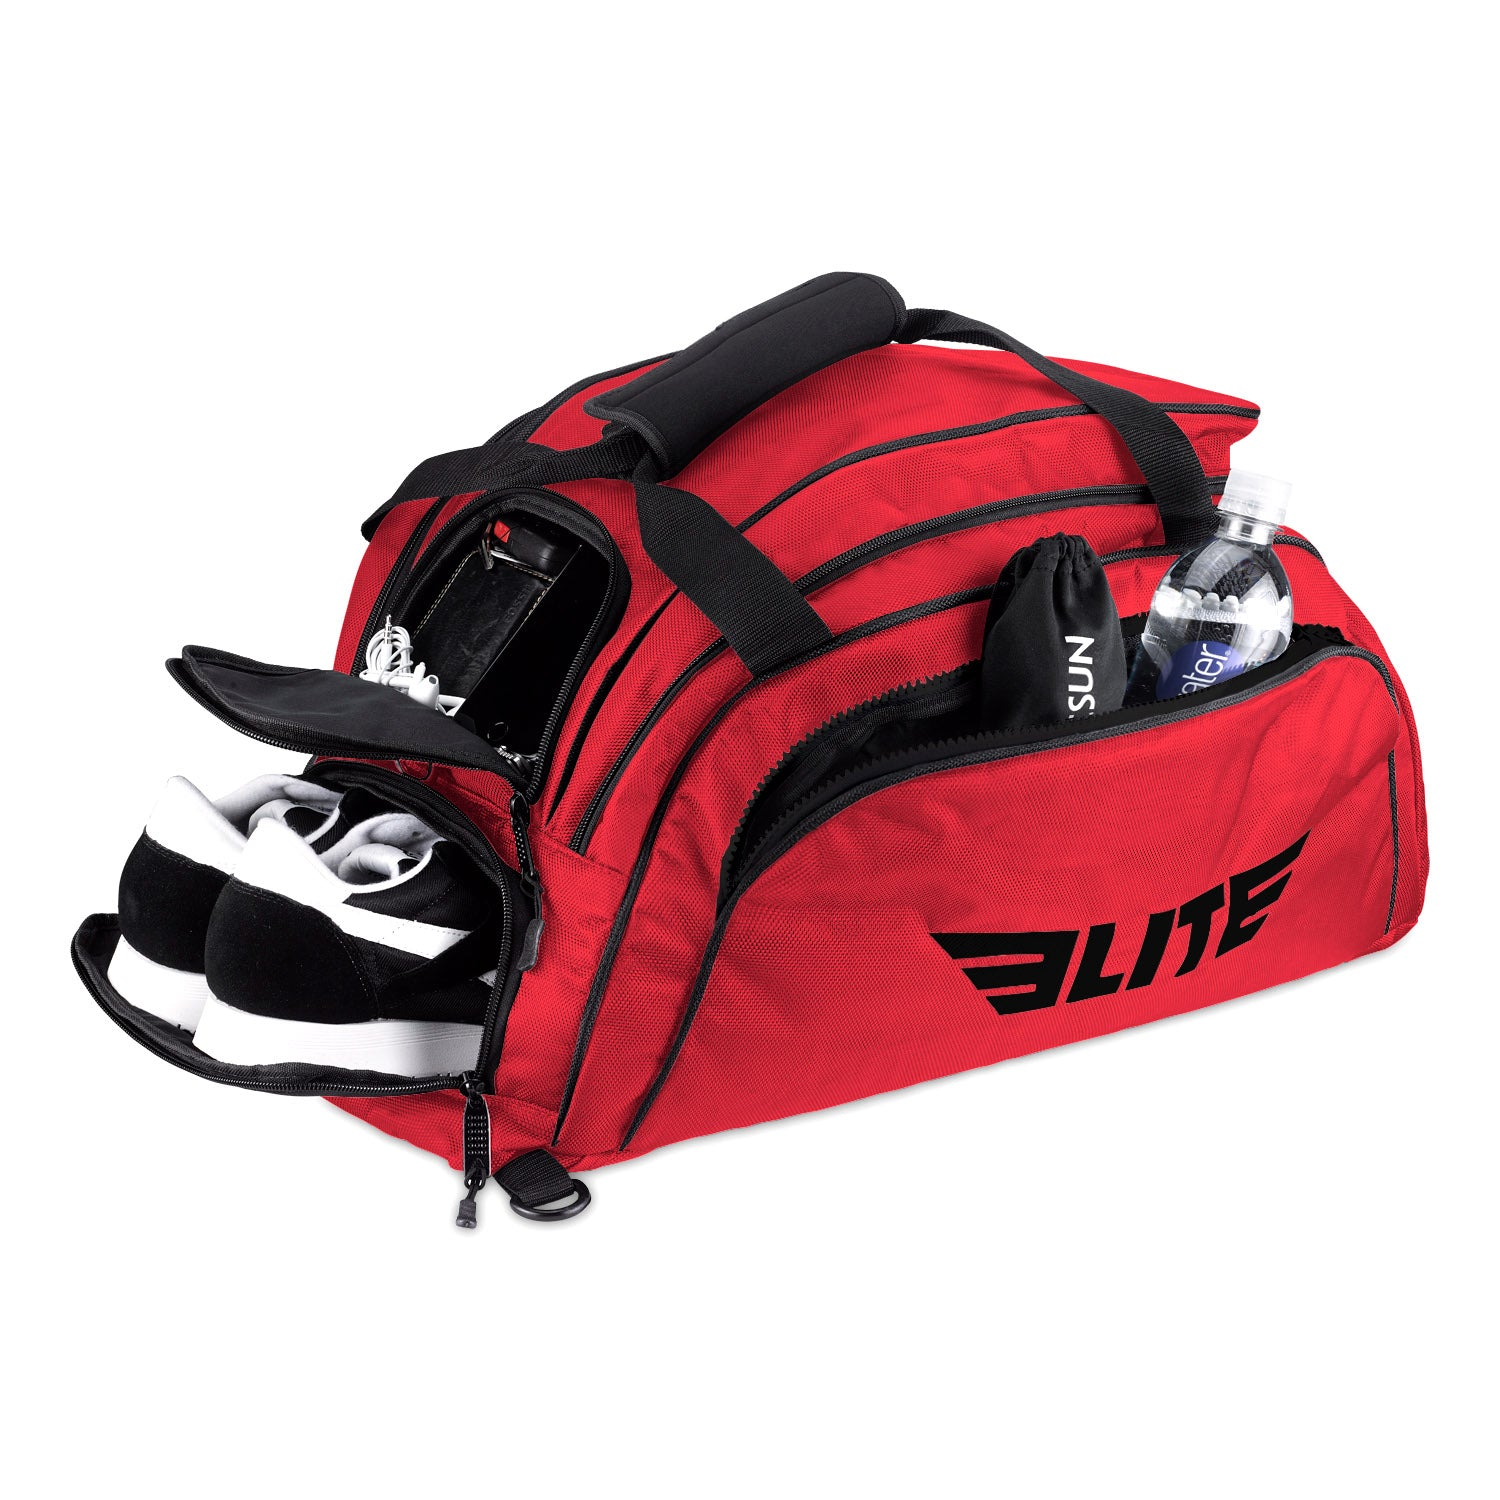 Load image into Gallery viewer, Elite Sports Warrior Series Red Large Duffel Training Gear Gym Bag & Backpack